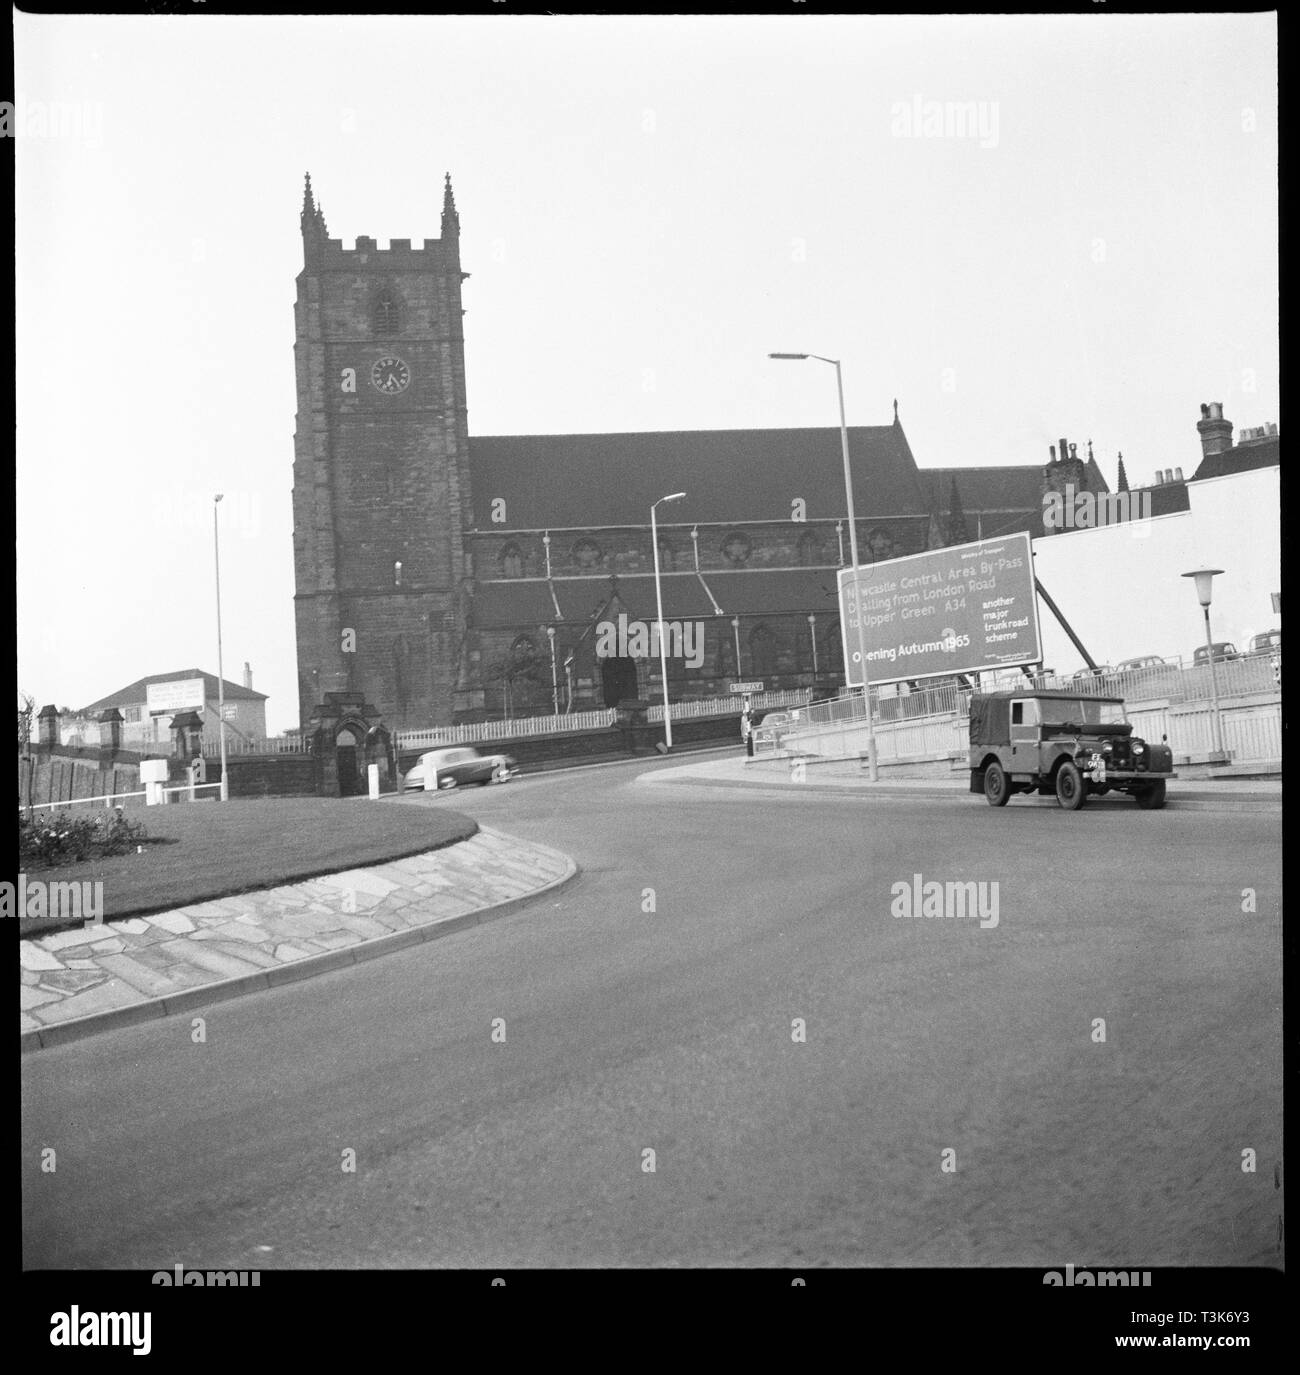 Church Street, Newcastle-under-Lyme, Staffordshire, 1965-1968. St Giles' Church viewed from the south-west with the newly constructed roundabout associated with the Newcastle Central Area Bypass in the foreground. - Stock Image